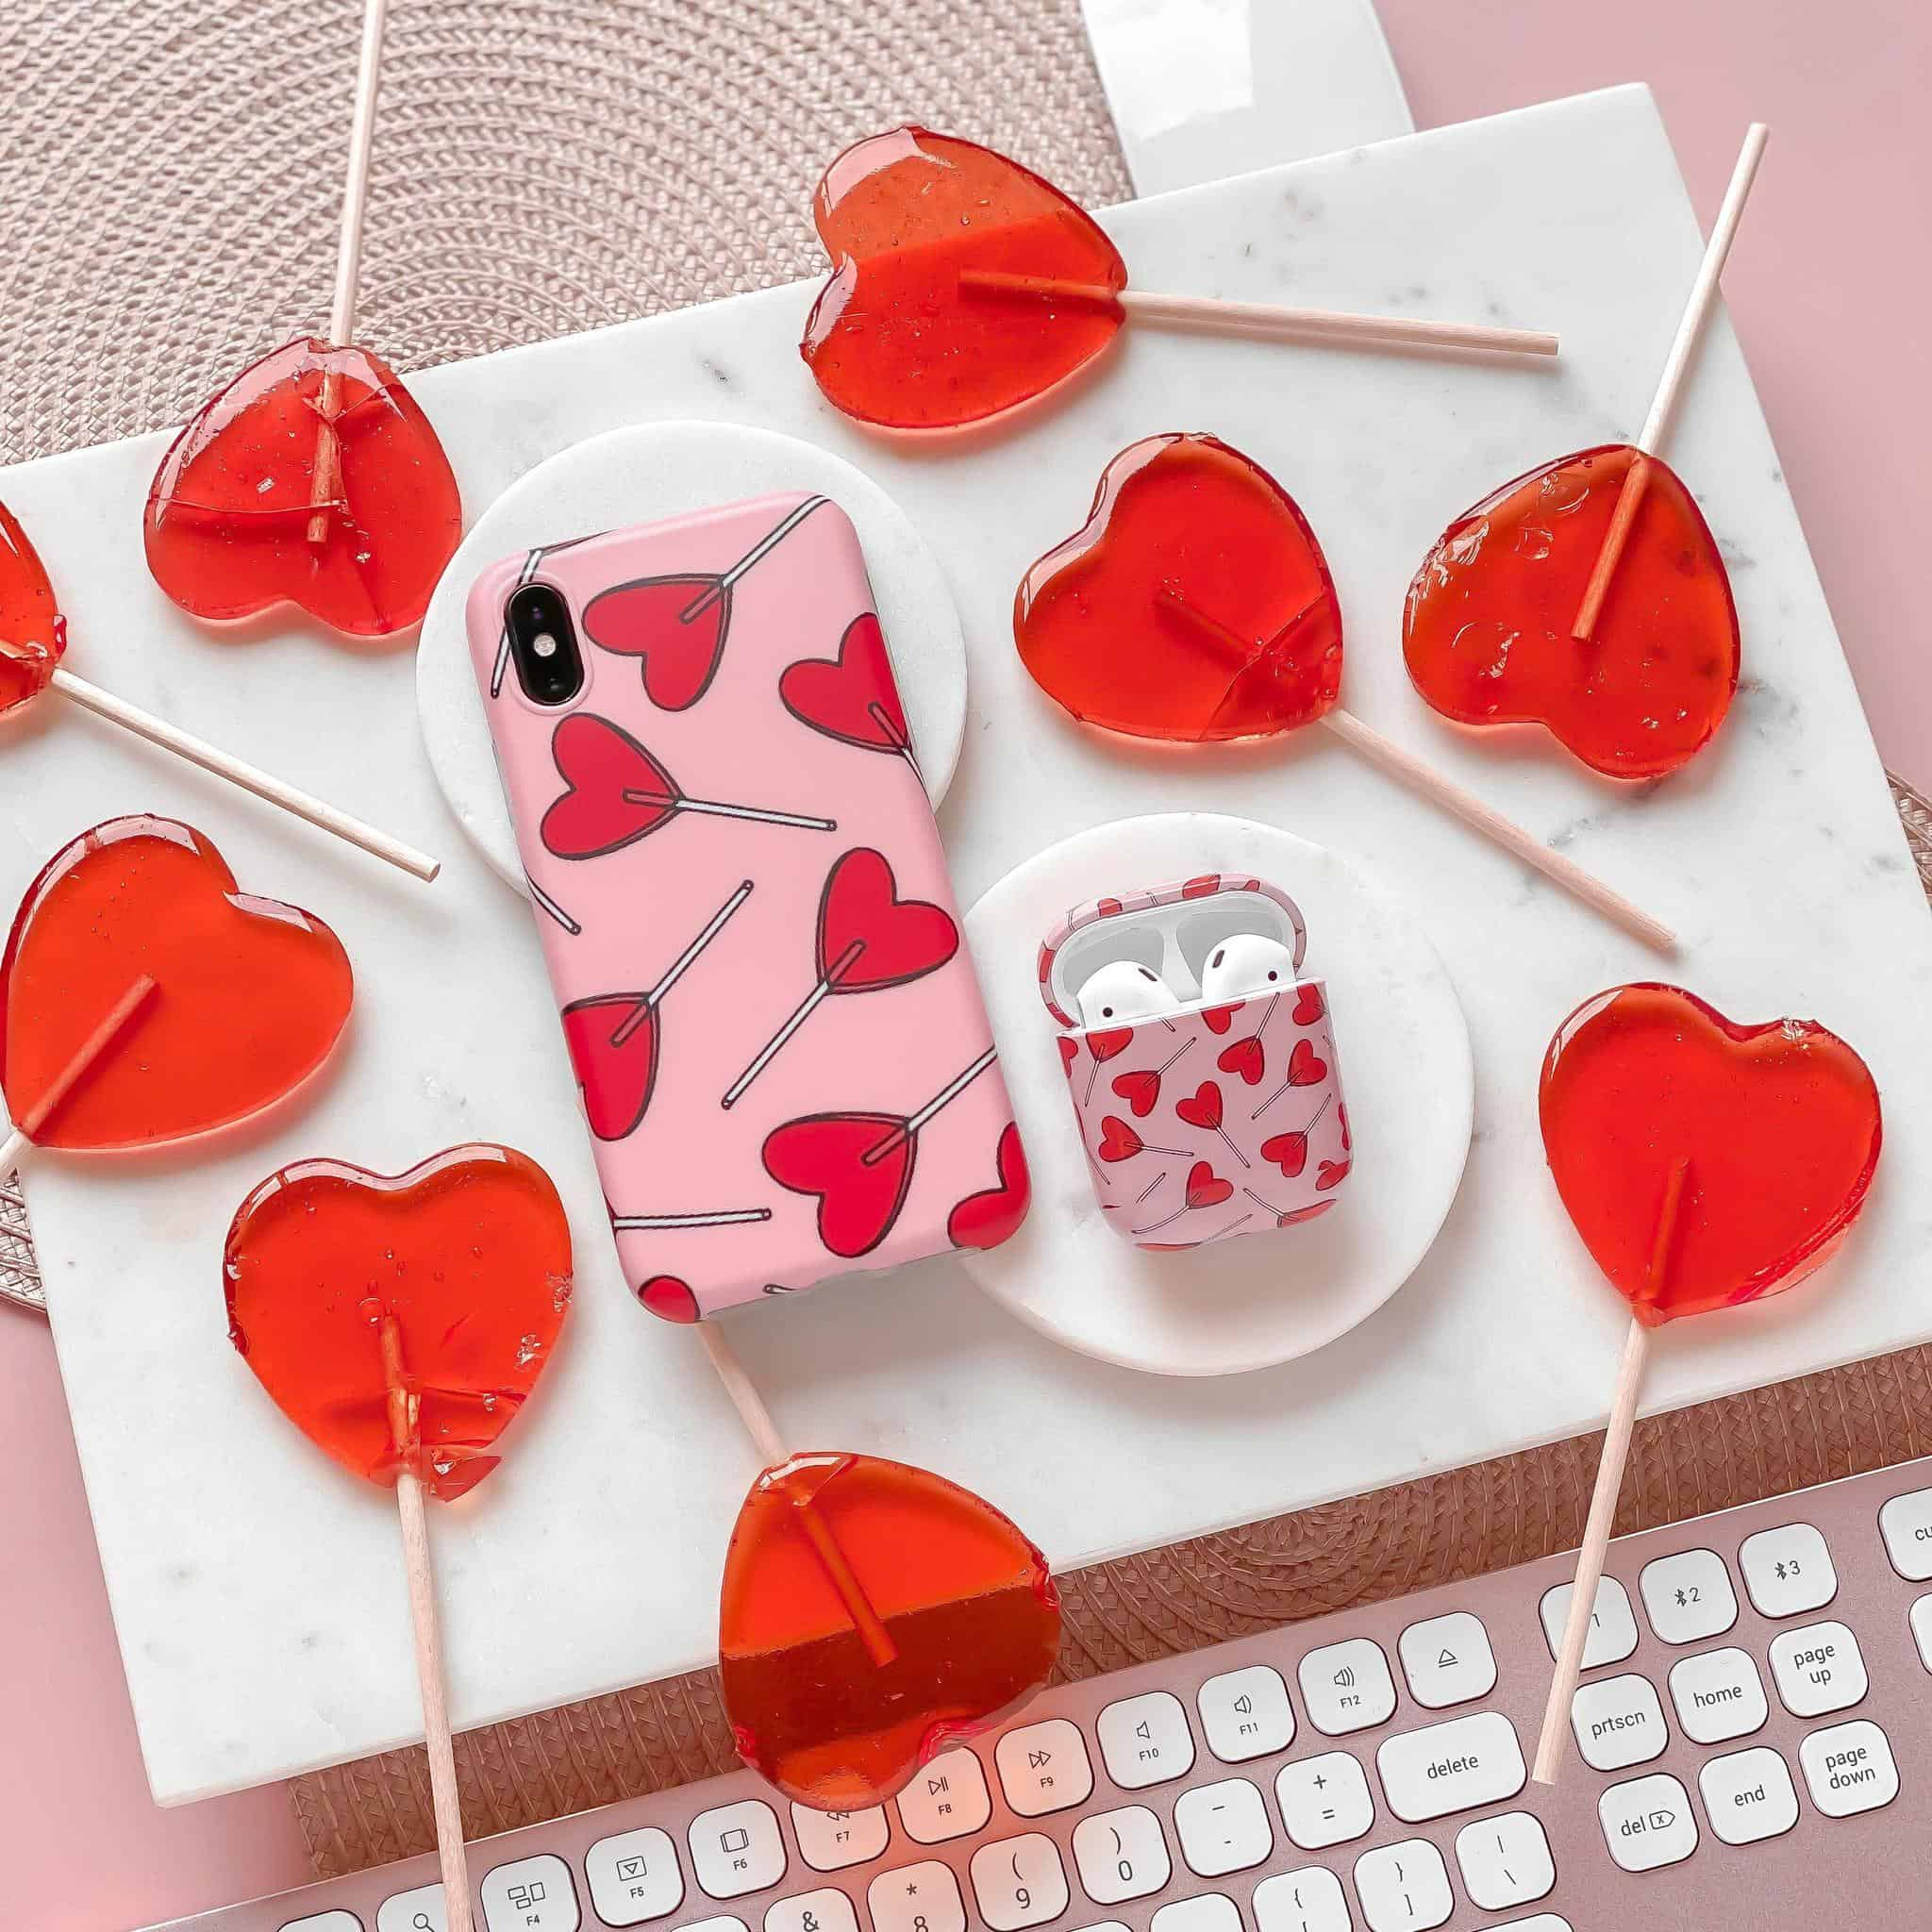 Candy Hearts Phone Case | Silhouette London